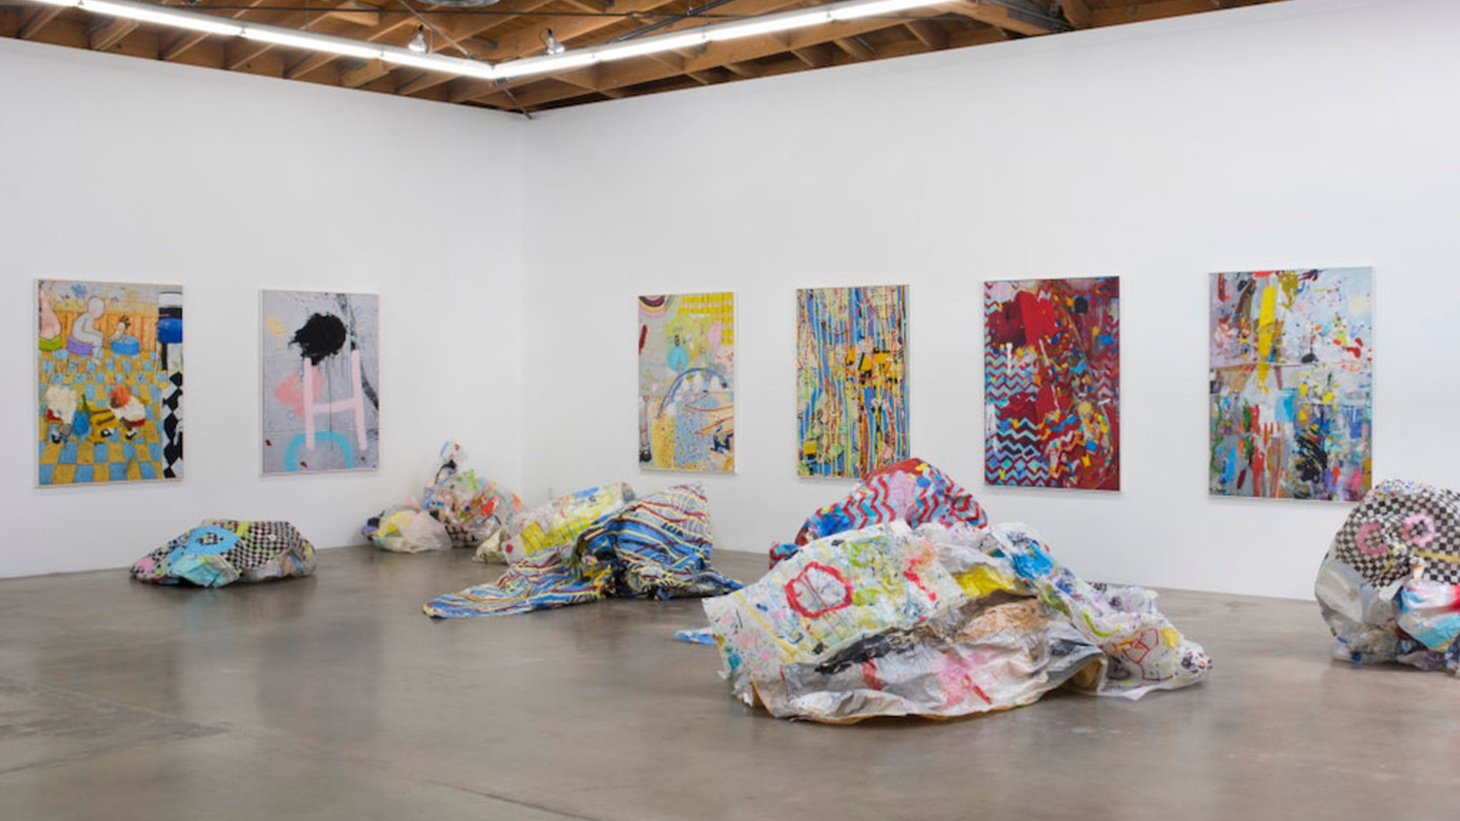 Edward Goldman suggests the best way to survive this crazy hot weather is to deal with crazy cool art.